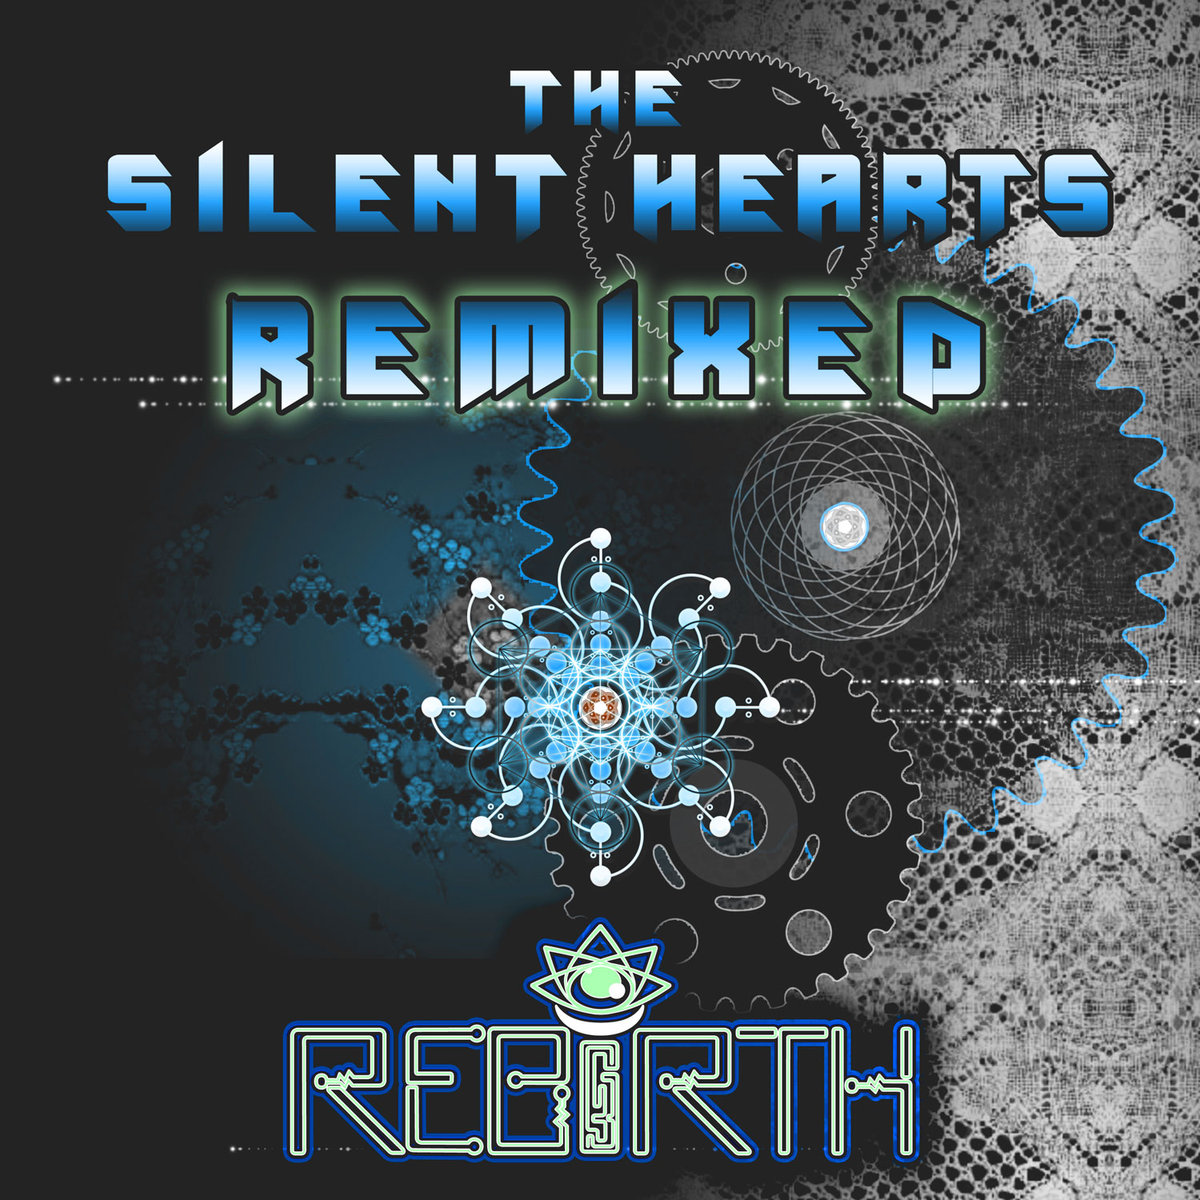 Rebirth - Silent Hearts (Dr. Knobz Remix) @ 'The Silent Hearts: Remixed' album (bass, electronic)